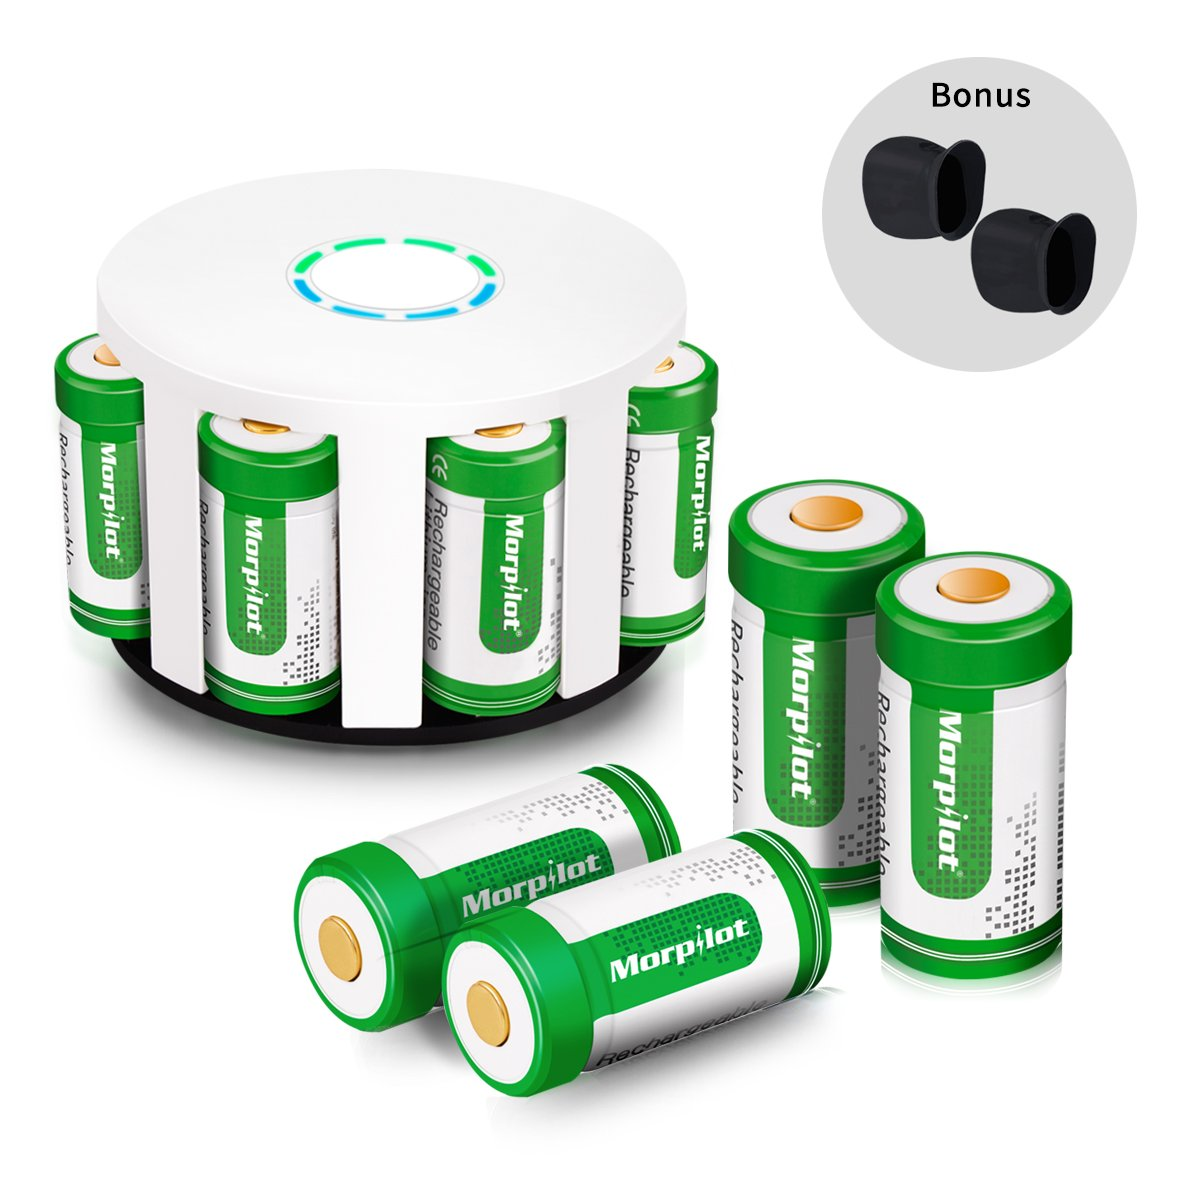 Morpilot RCR123A Rechargeable Batteries and Charger 8Pcs 3.7V 700mAh Li-ion Battery with 8-Ports Charger for Arlo VMC3030/3230/3330/3430/3530 Security Cameras